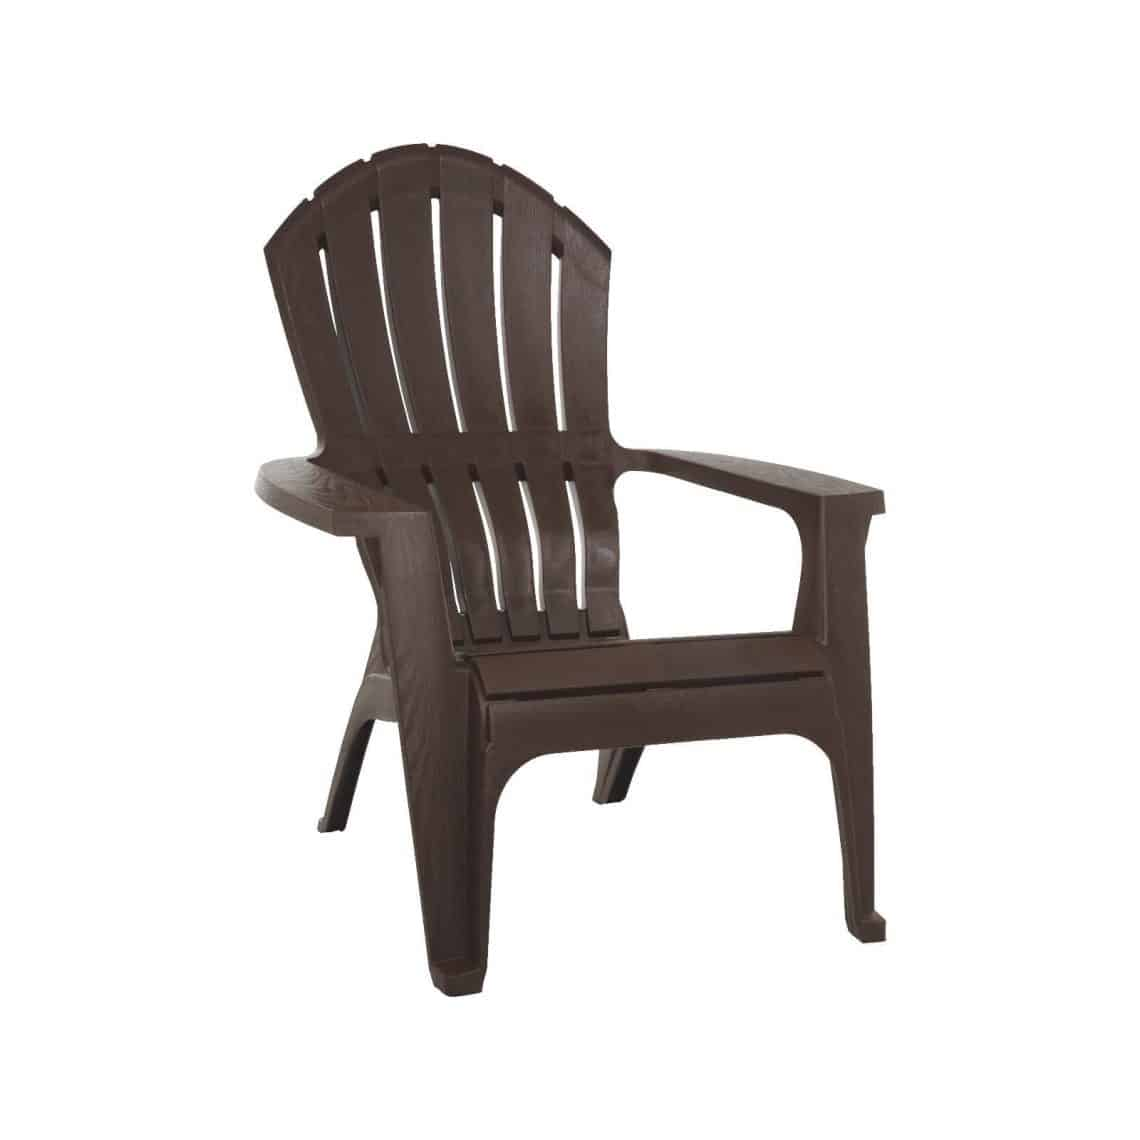 Adams Realcomfort Adirondack Resin Chair 10 Colors To